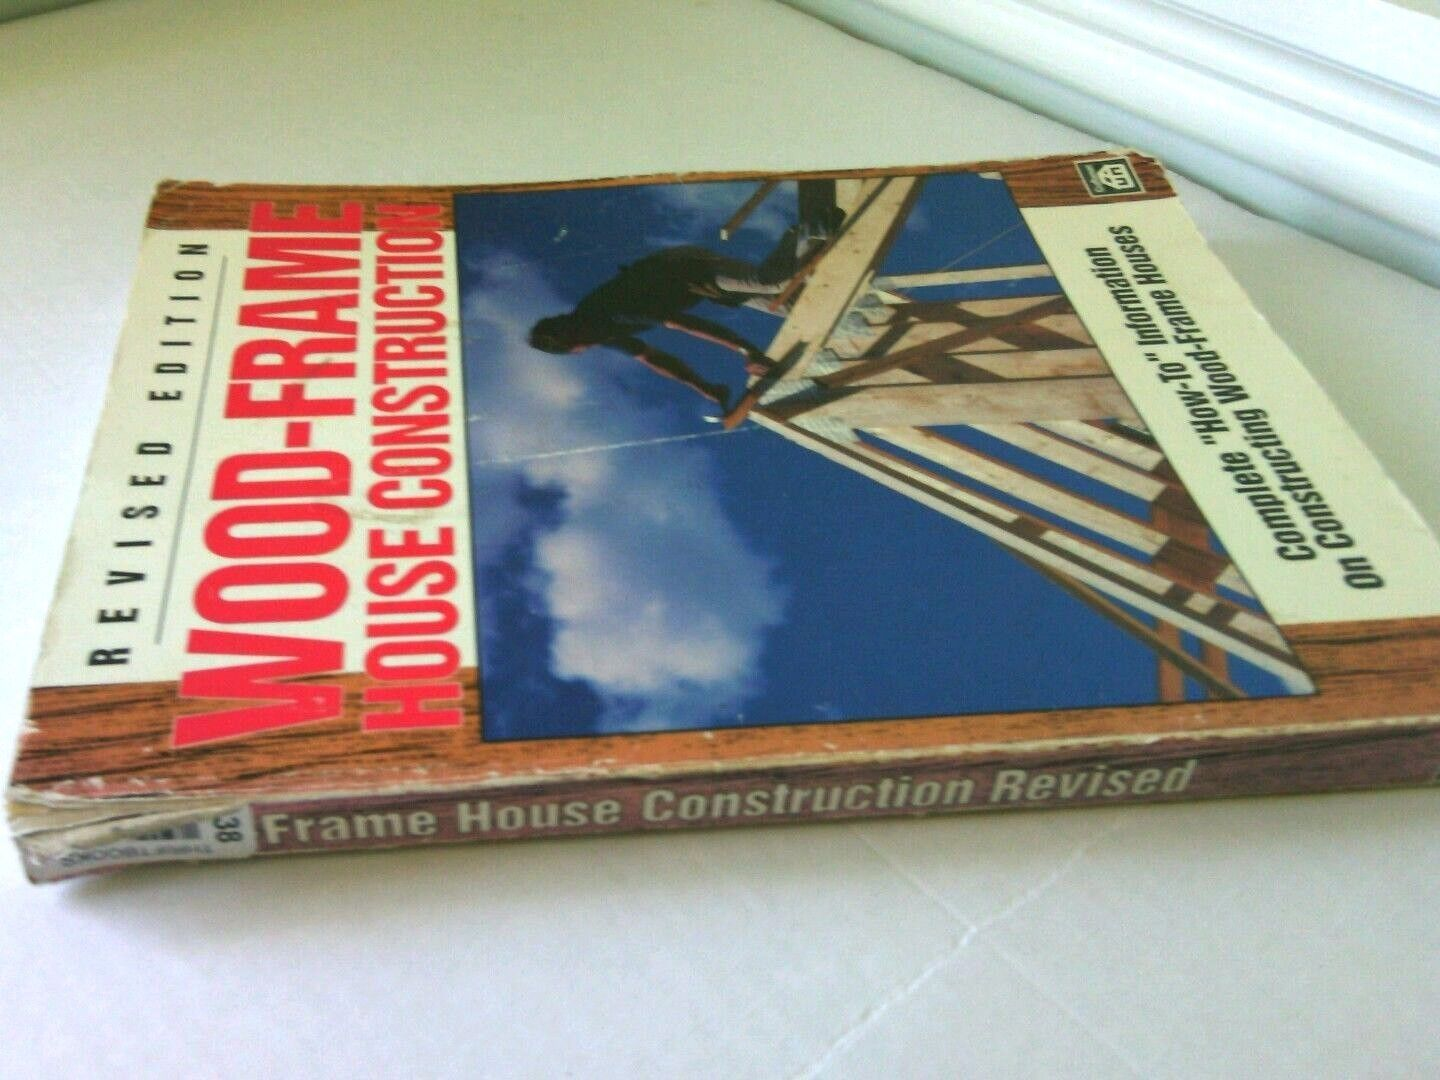 Wood Frame House Construction Book